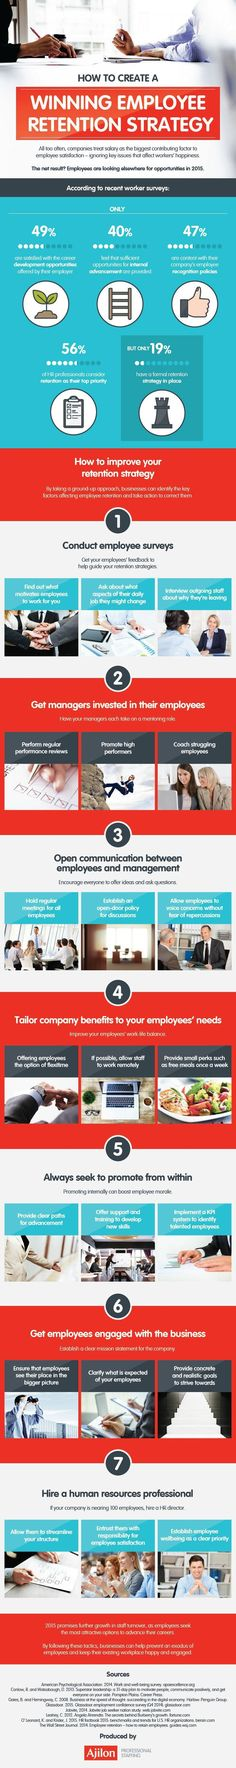 The 7 Key Elements of Employee Retention [INFOGRAPHIC]